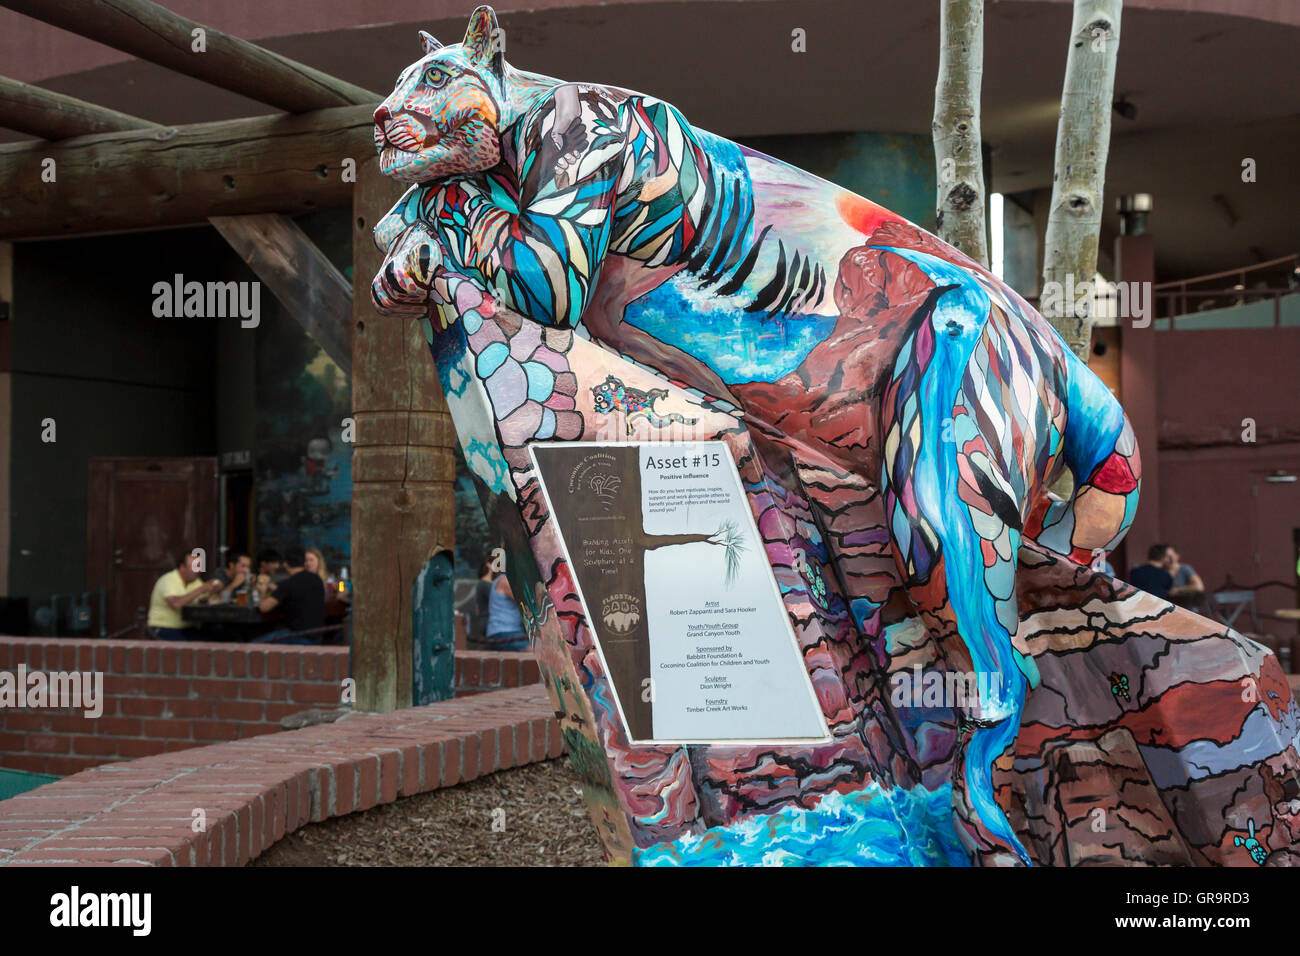 Flagstaff Arizona - A painted sculpture of a mountain lion on display in Heritage Square. & Flagstaff Arizona - A painted sculpture of a mountain lion on Stock ...